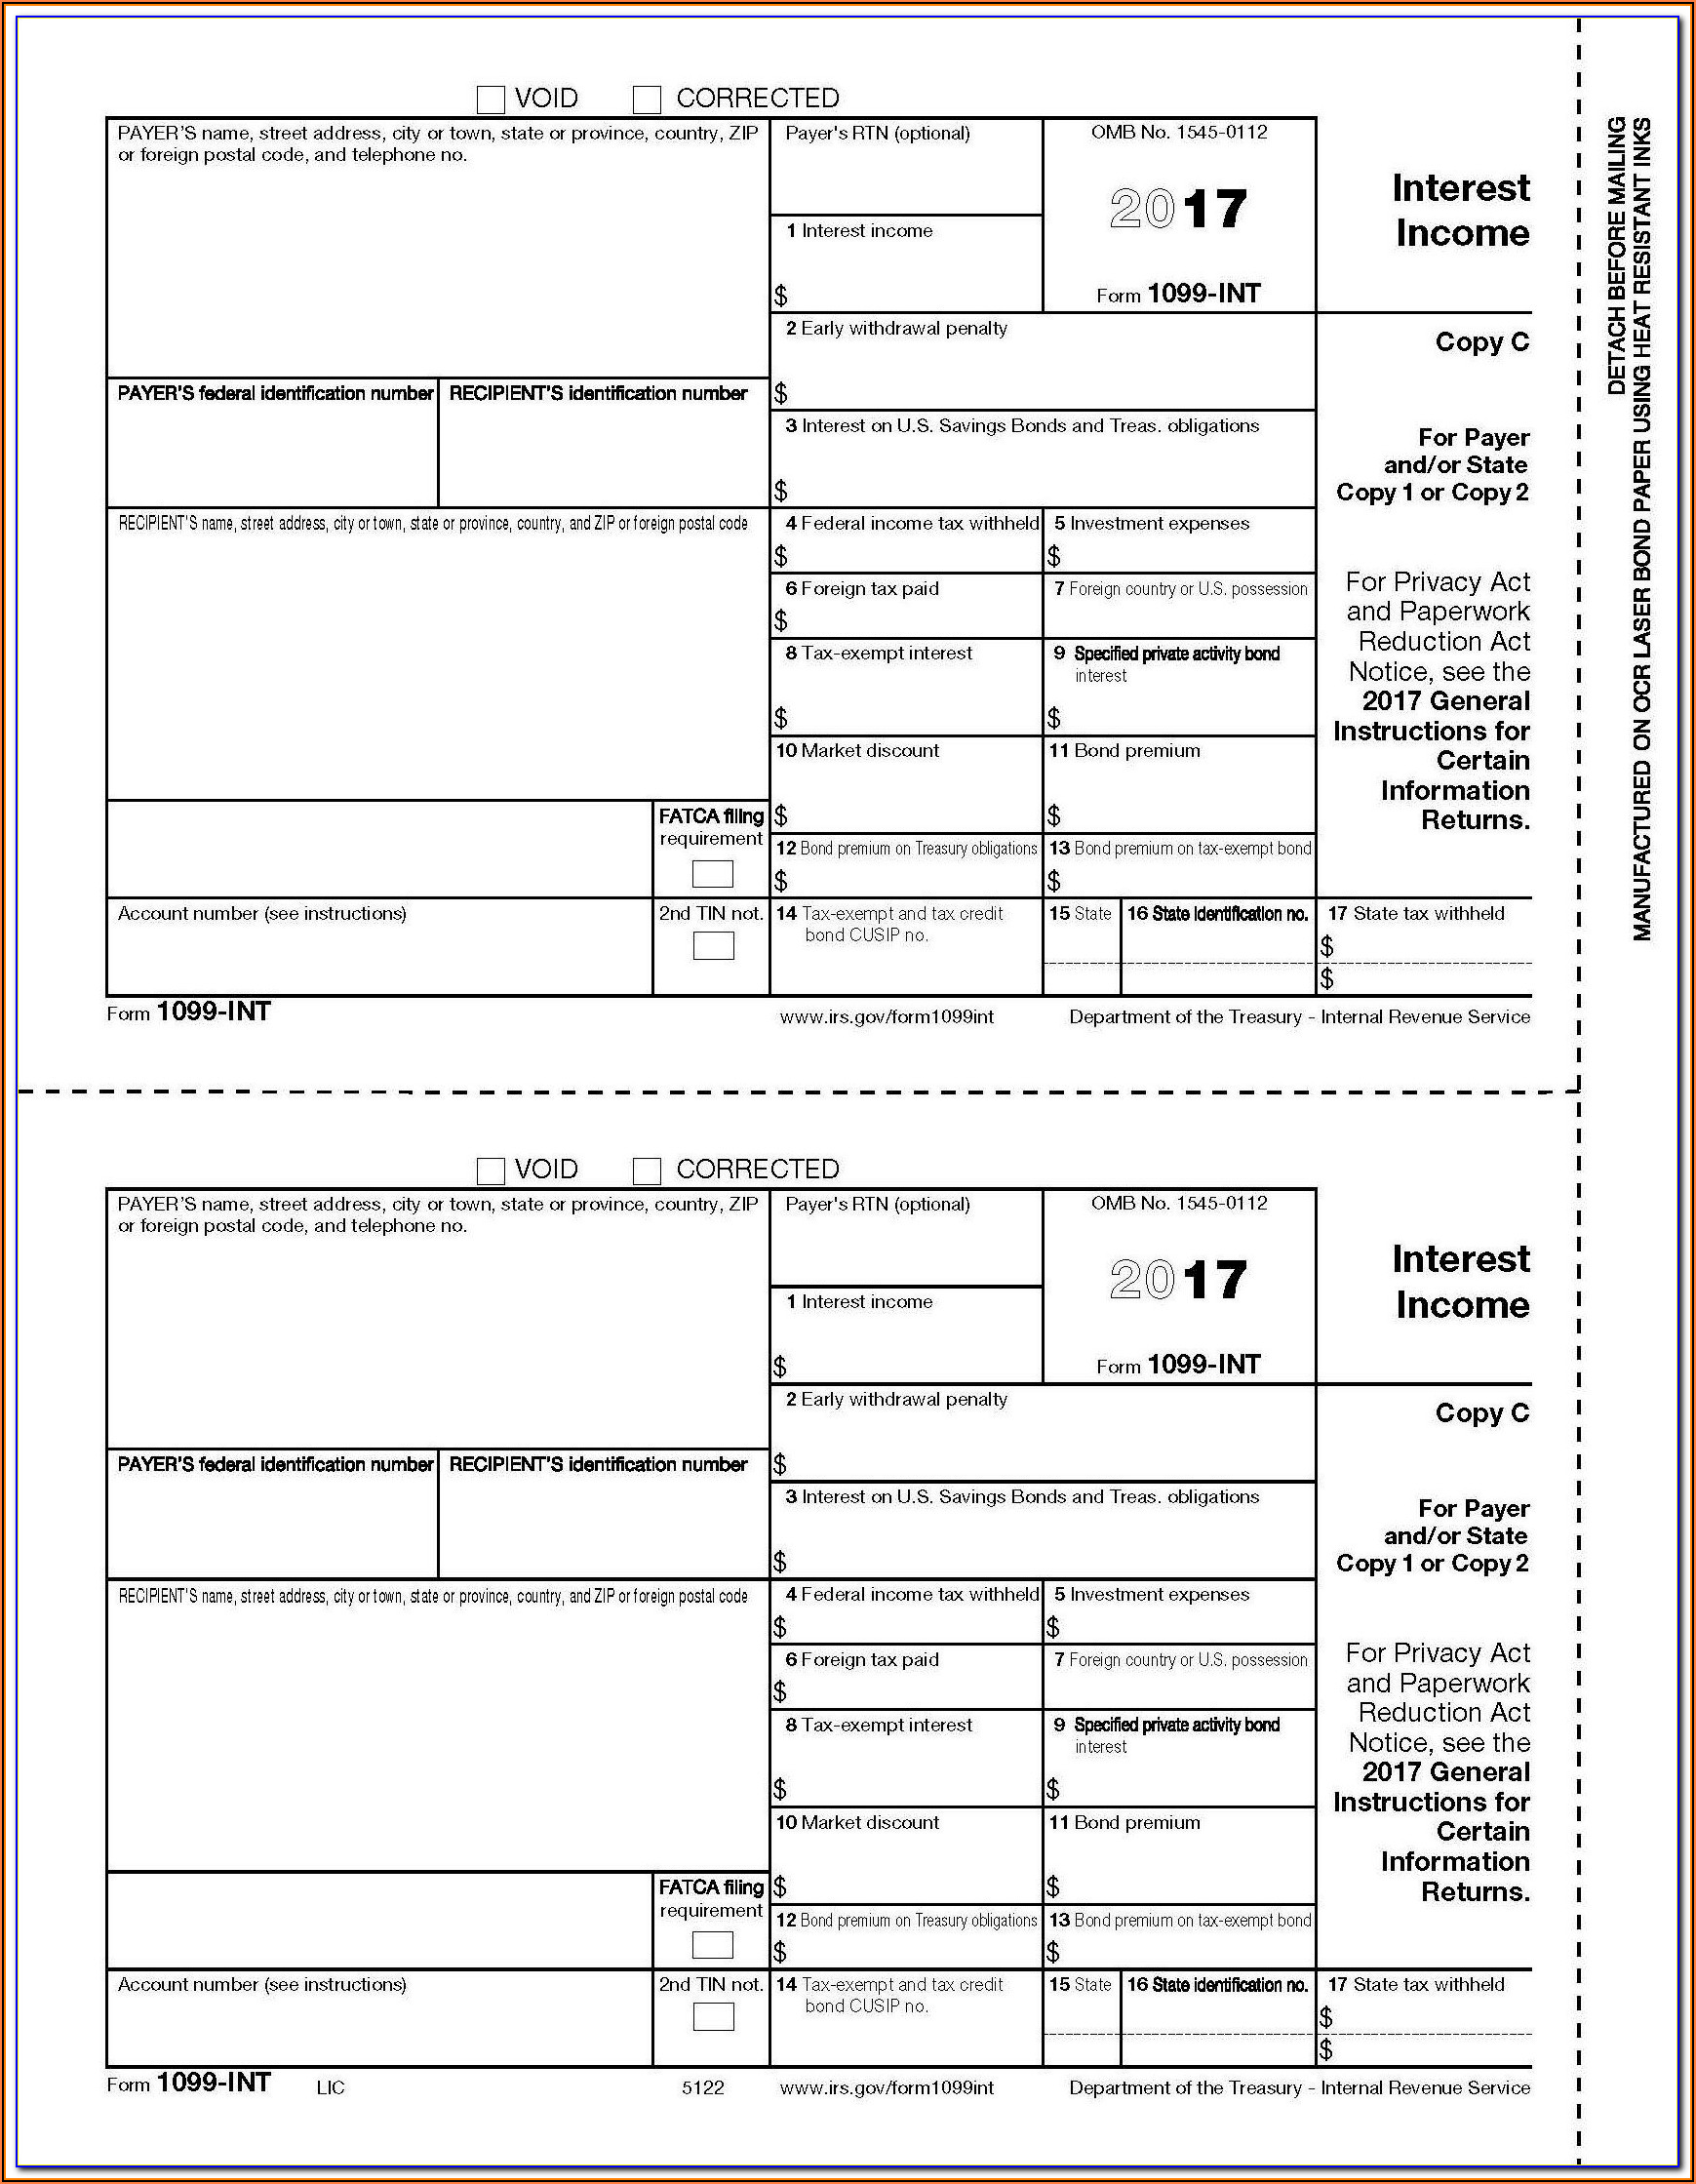 Irs.gov 1099 Forms